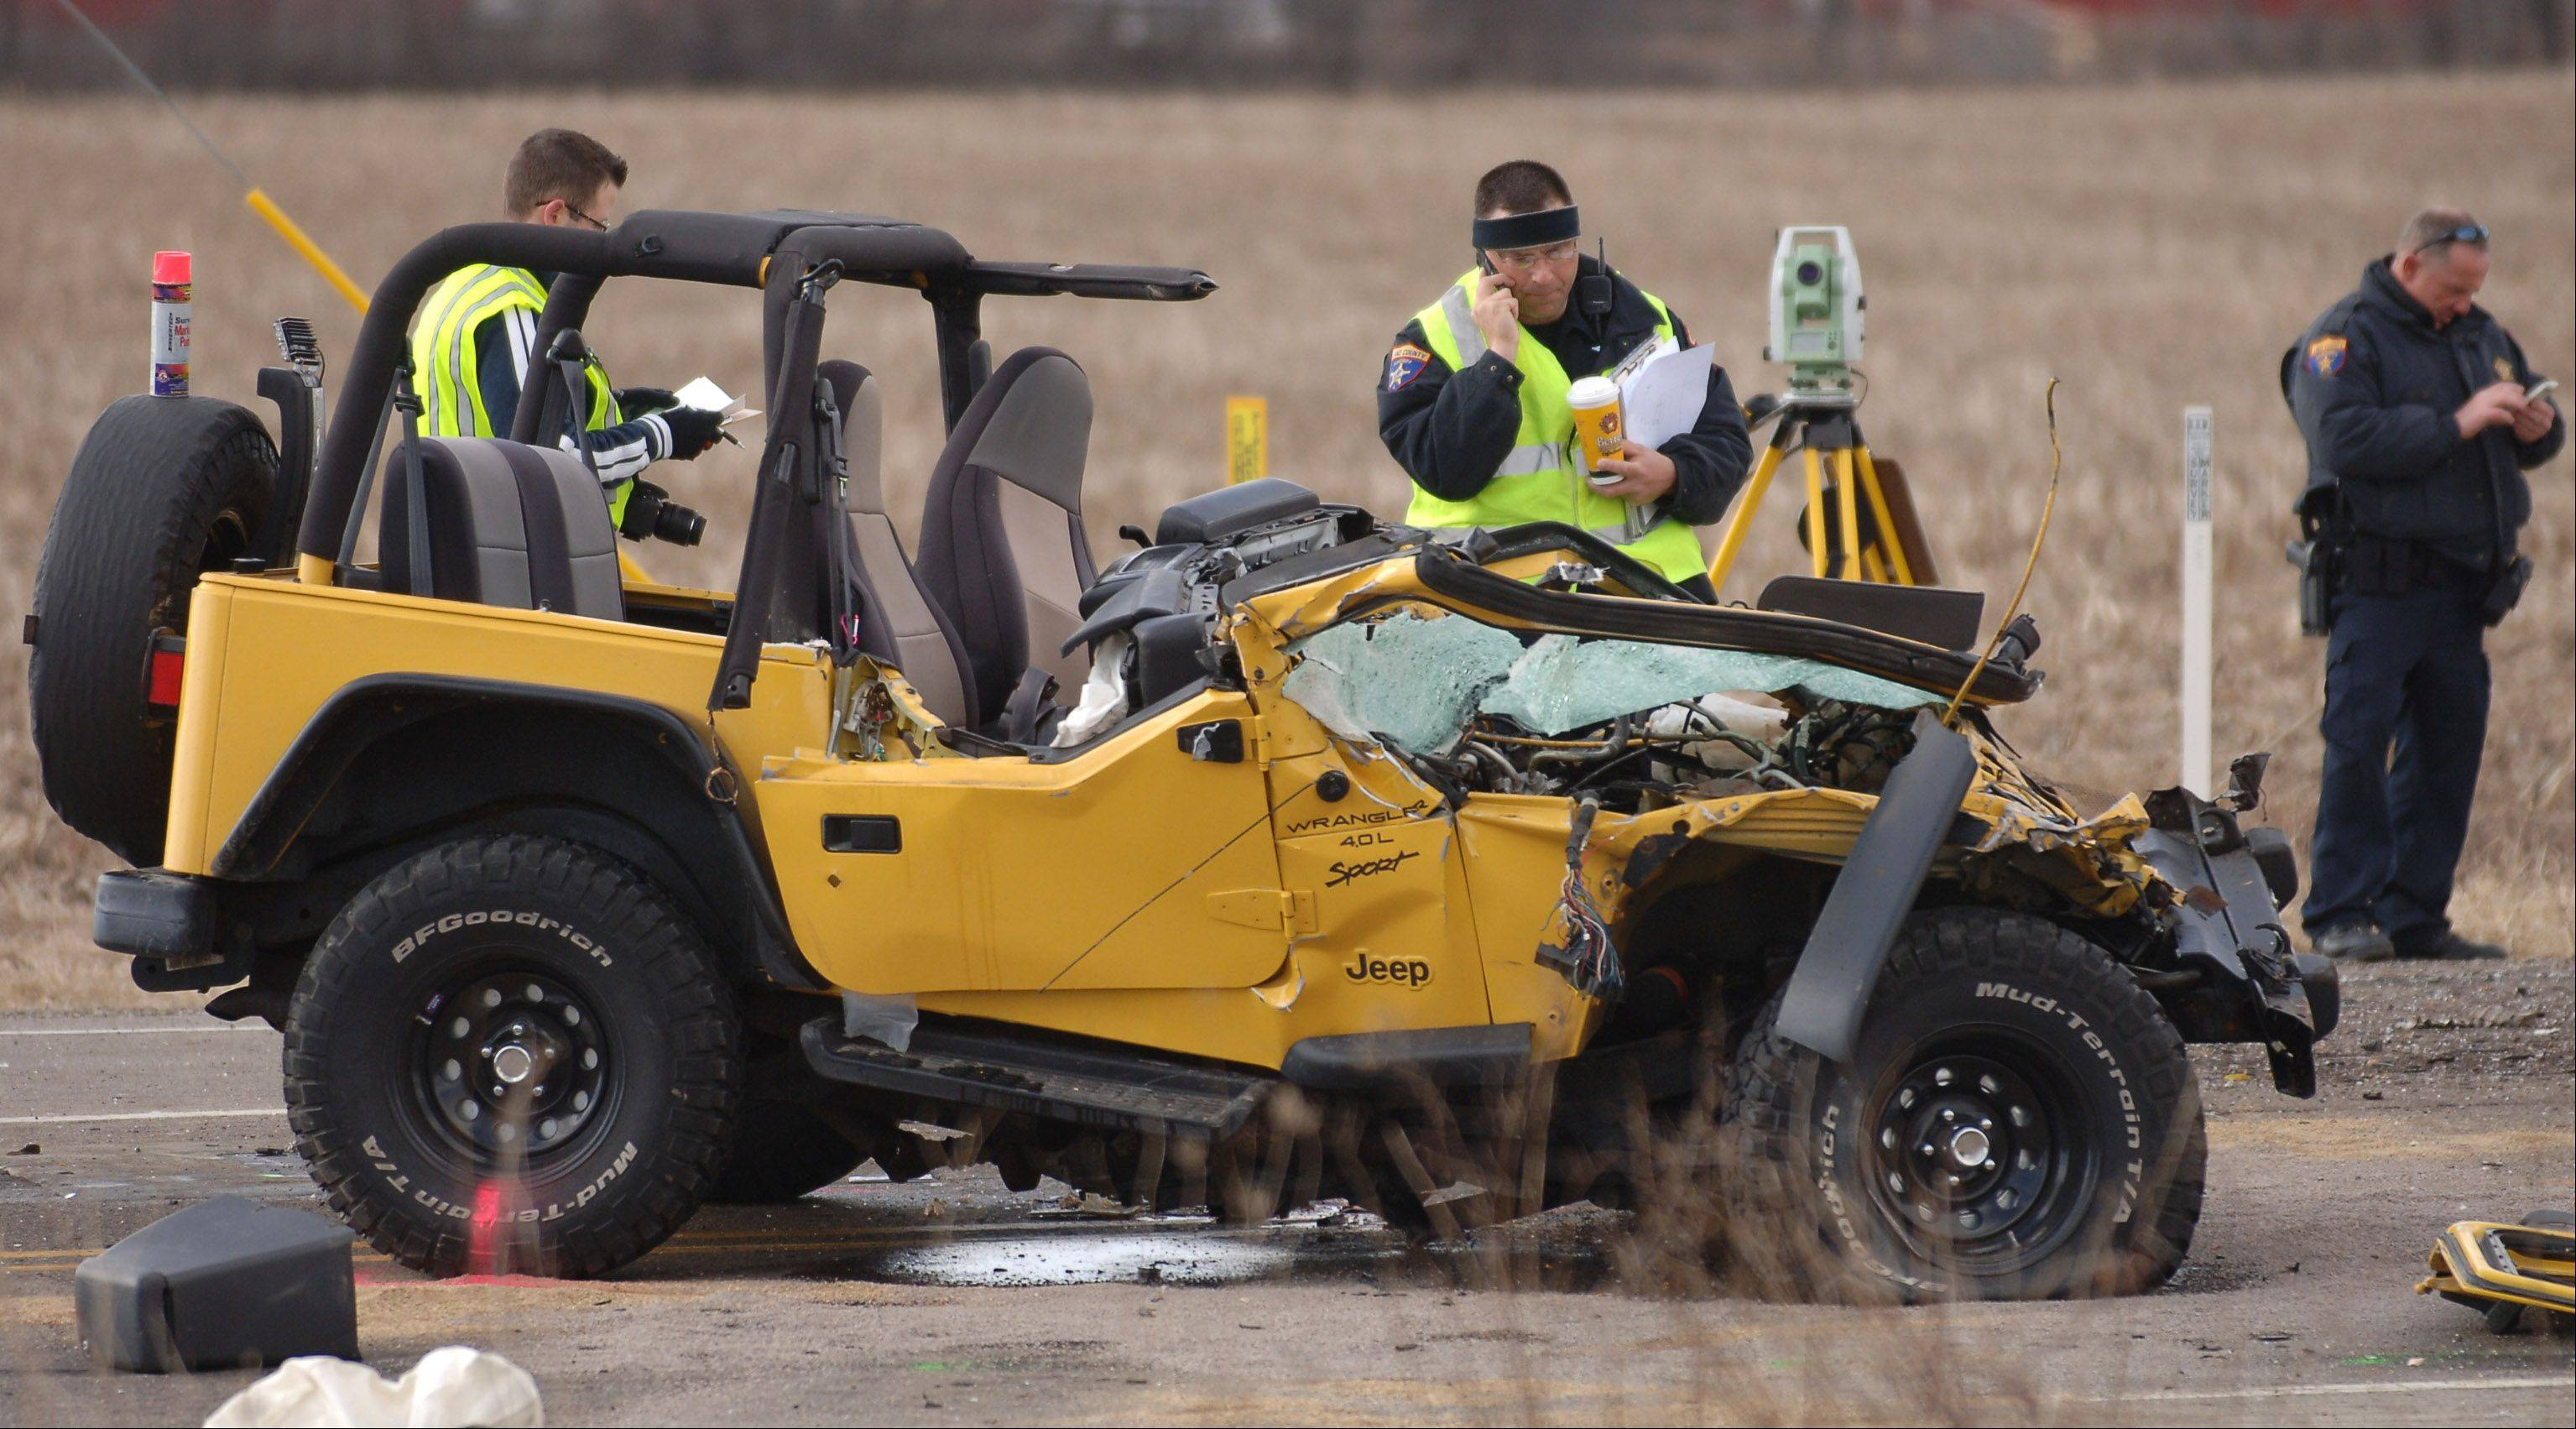 A Jeep Wrangler sits badly damaged following a crash at Route 173 and N. Kilbourne Road near Wadsworth.